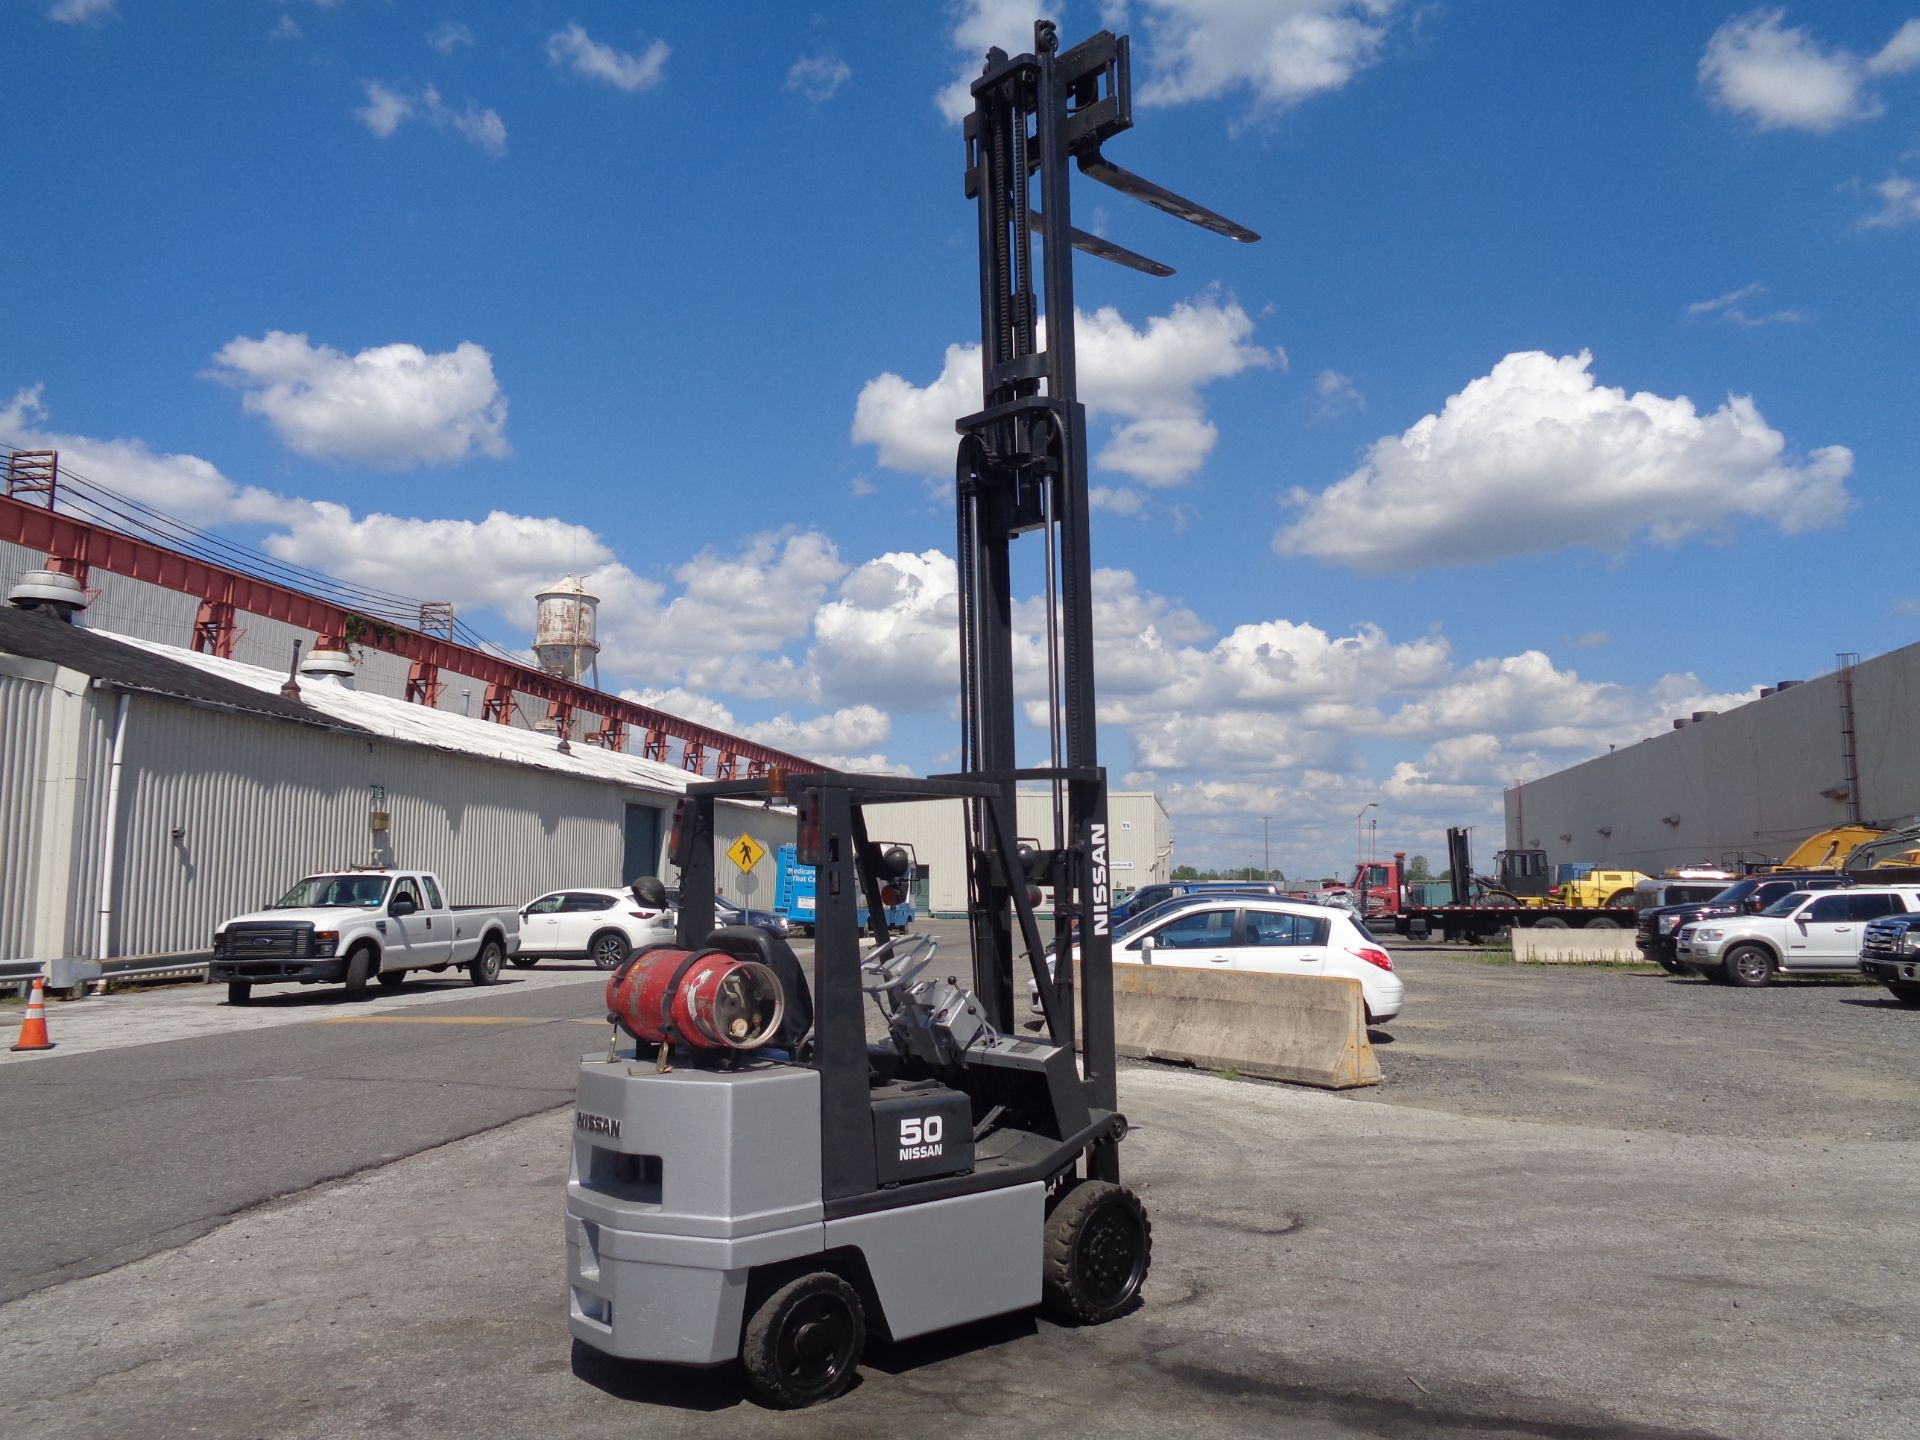 Nissan KCPH02A25PV 4,400 lb Forklift - Image 11 of 17